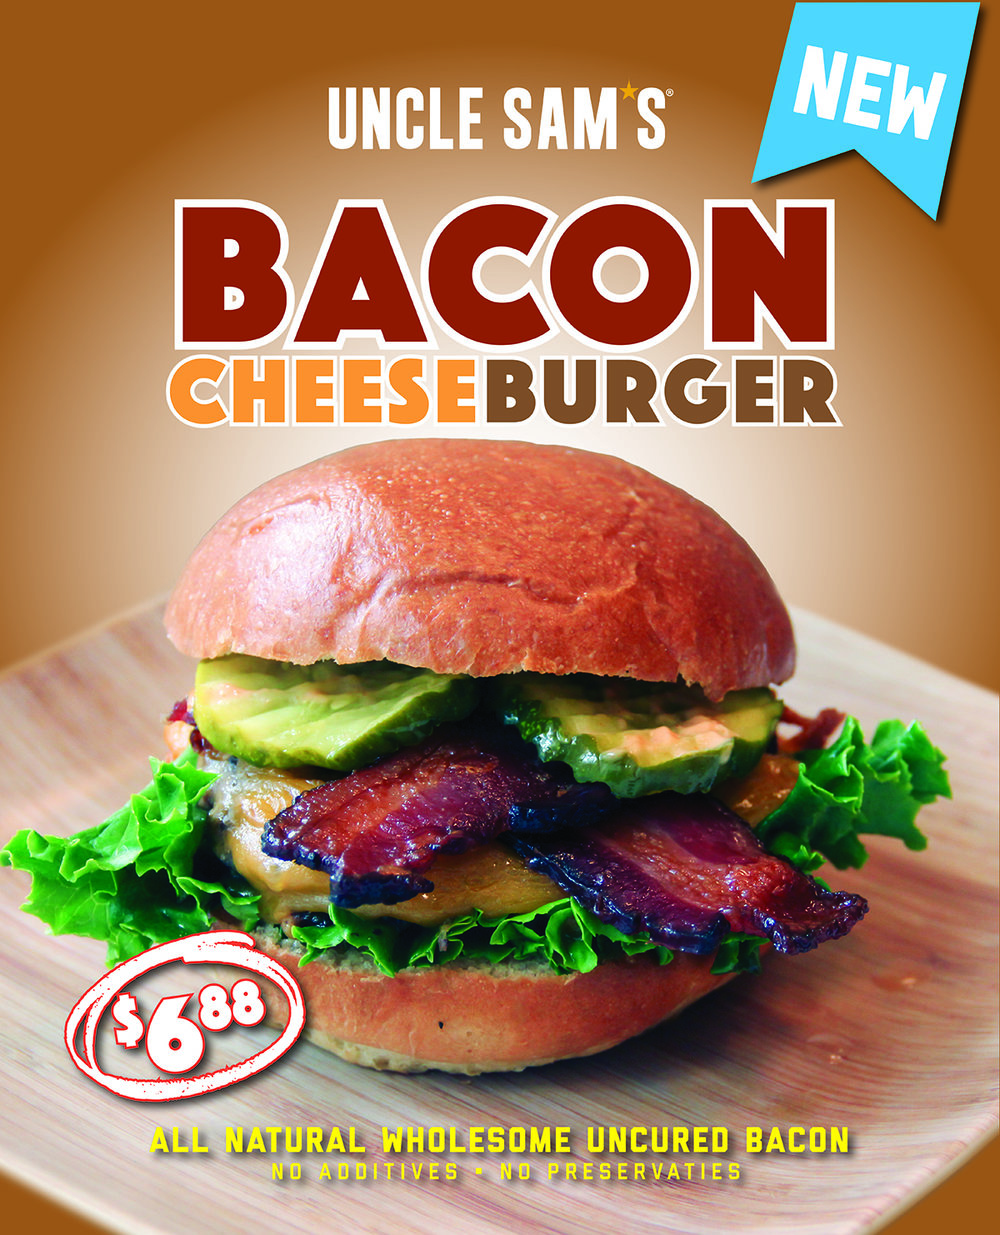 Bacon Cheeseburger - Tech Frame Poster-01.jpg